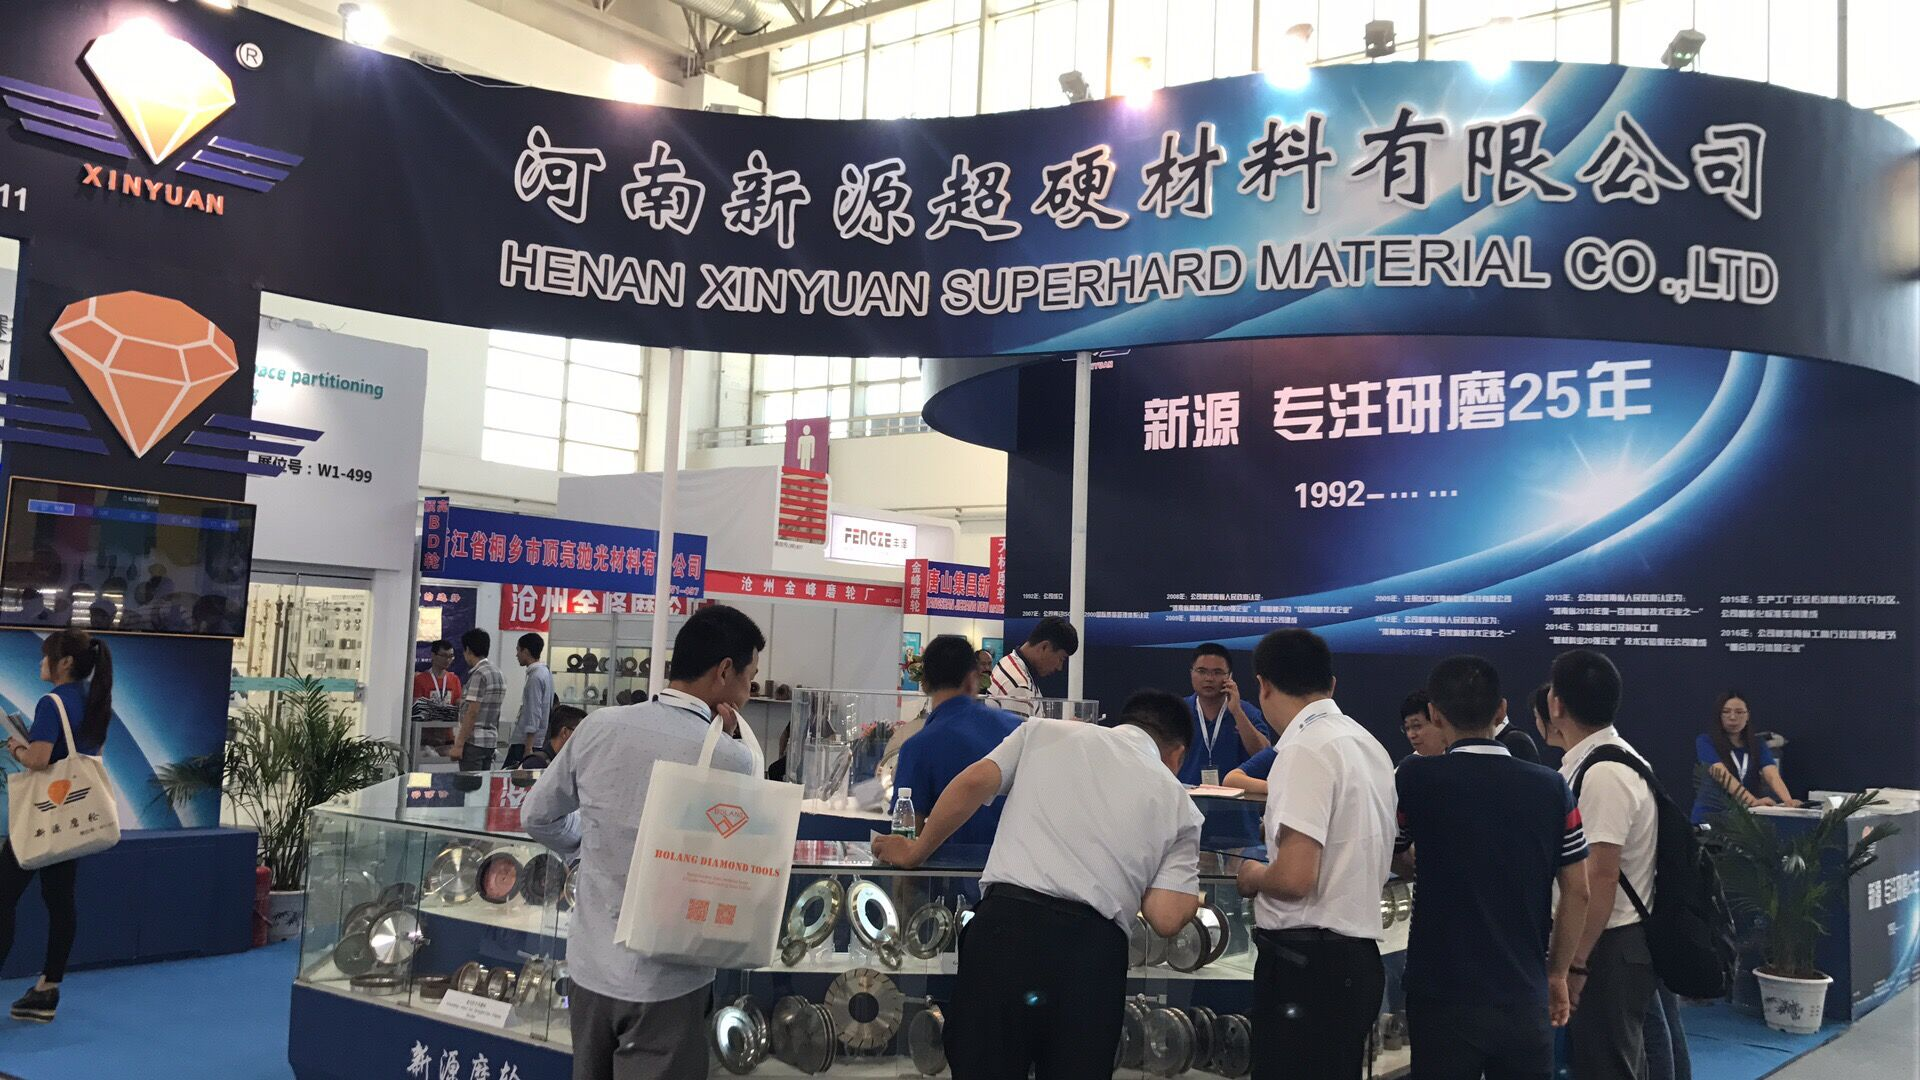 XINYUAN DIAMOND WHEEL exhibiting at China Beijing Glass Fair